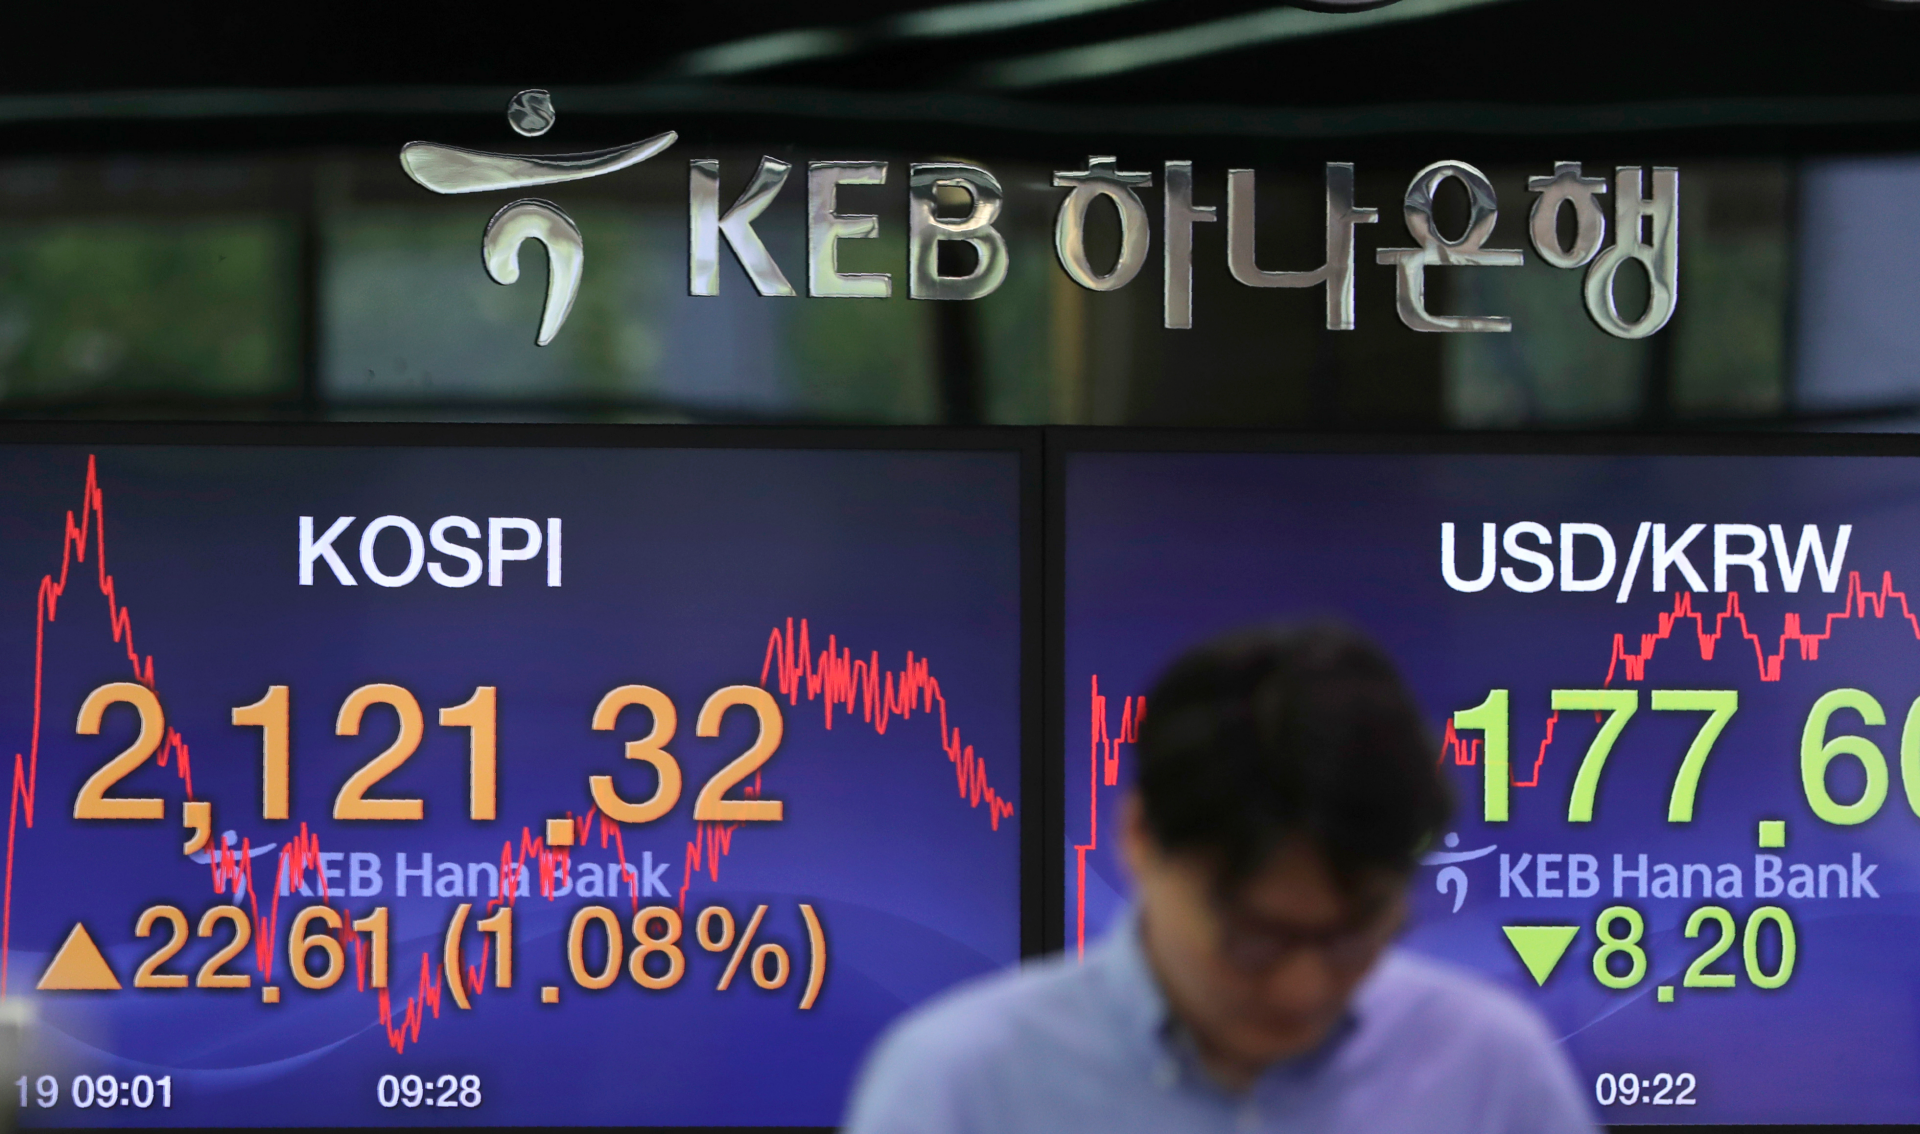 Global shares mixed ahead of Fed rate decision